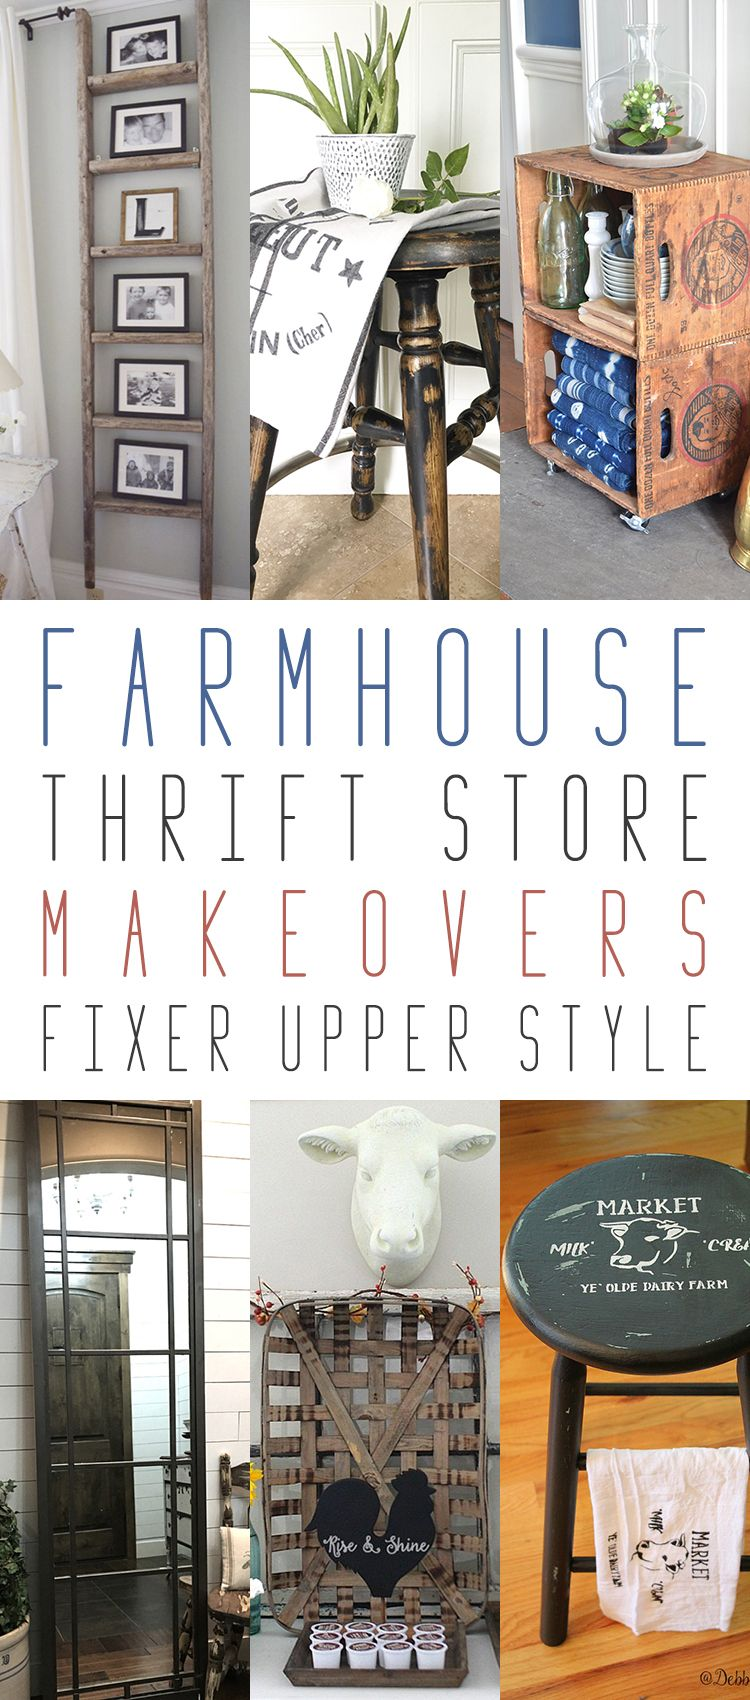 10 farmhouse thrift store makeovers fixer upper style. Black Bedroom Furniture Sets. Home Design Ideas